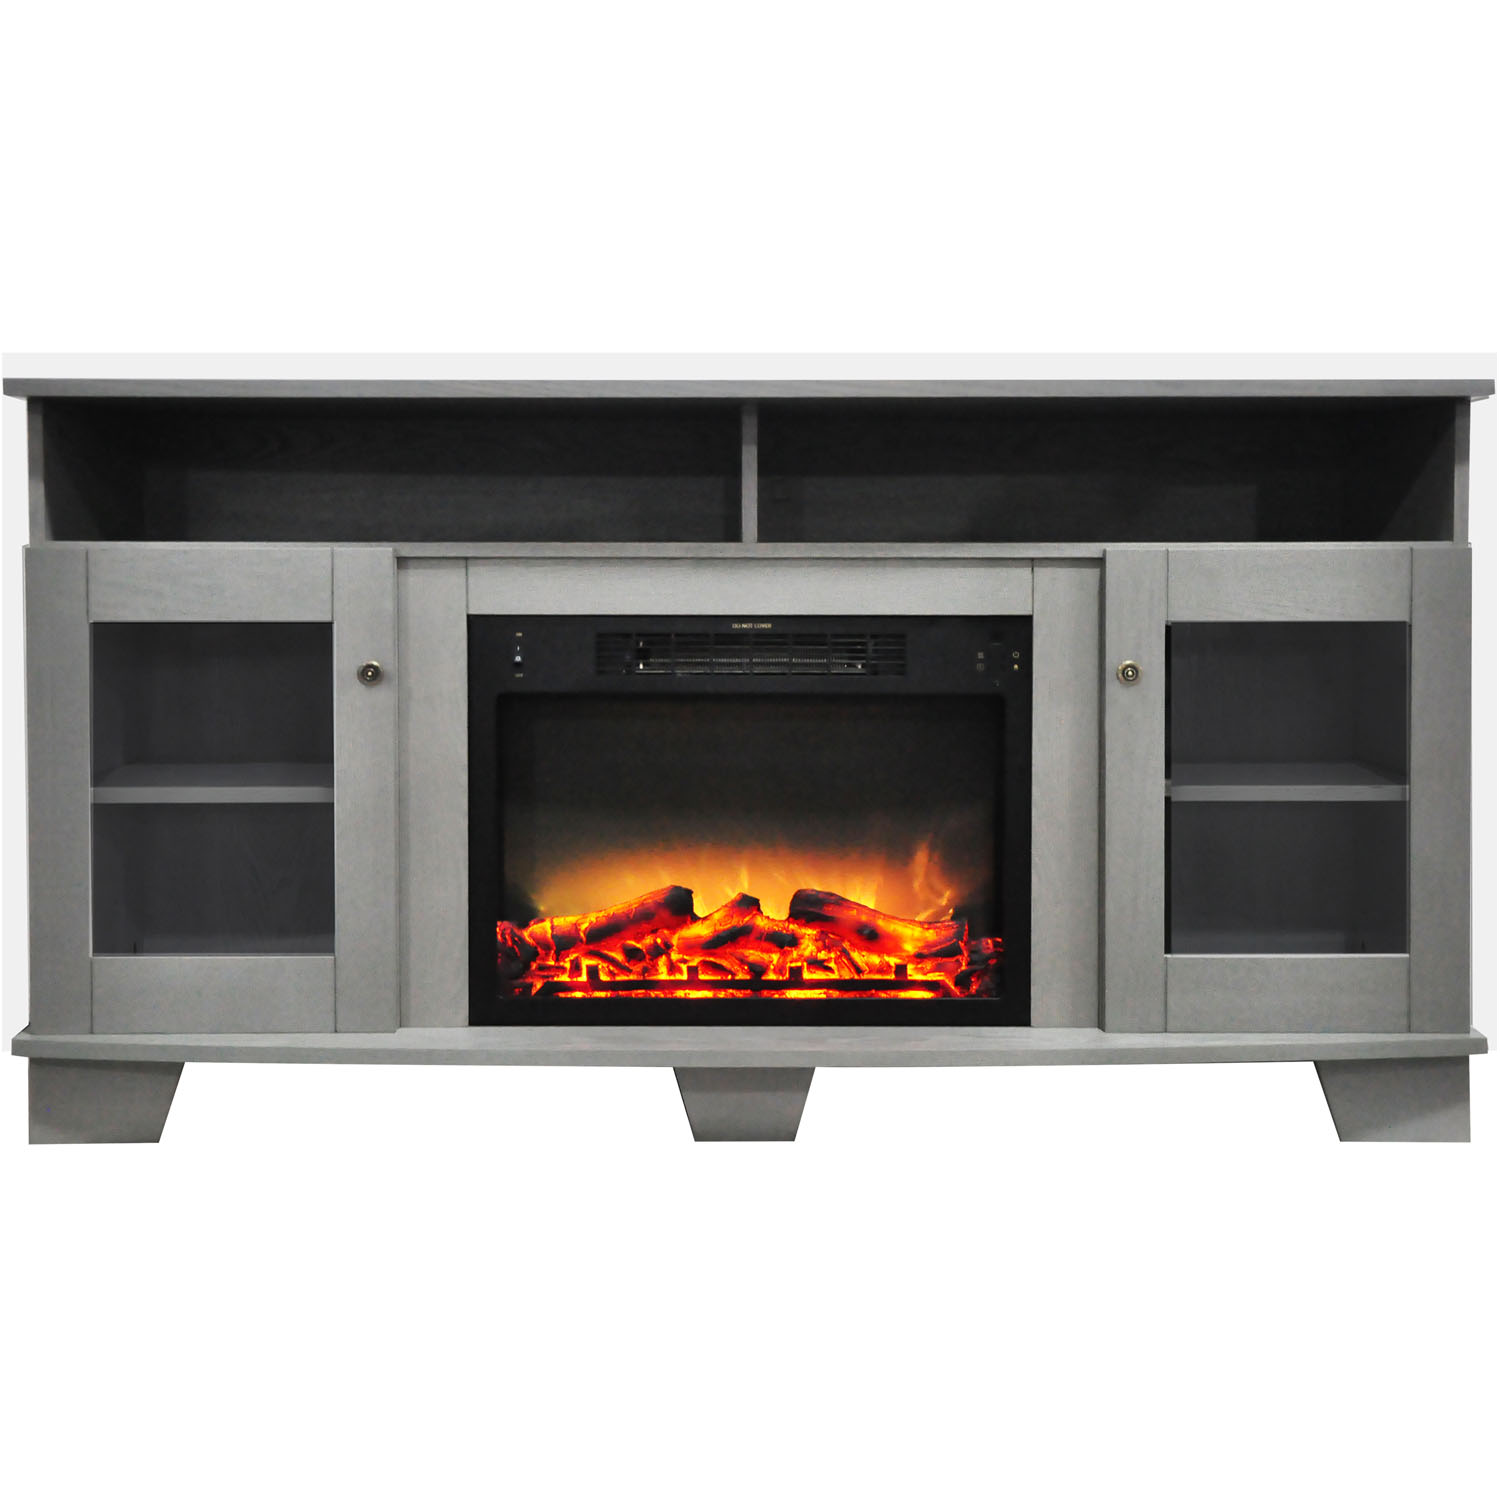 "Cambridge Savona Electric Fireplace Heater with 59"" Entertainment Stand plus Enhanced Log and Grate Display"